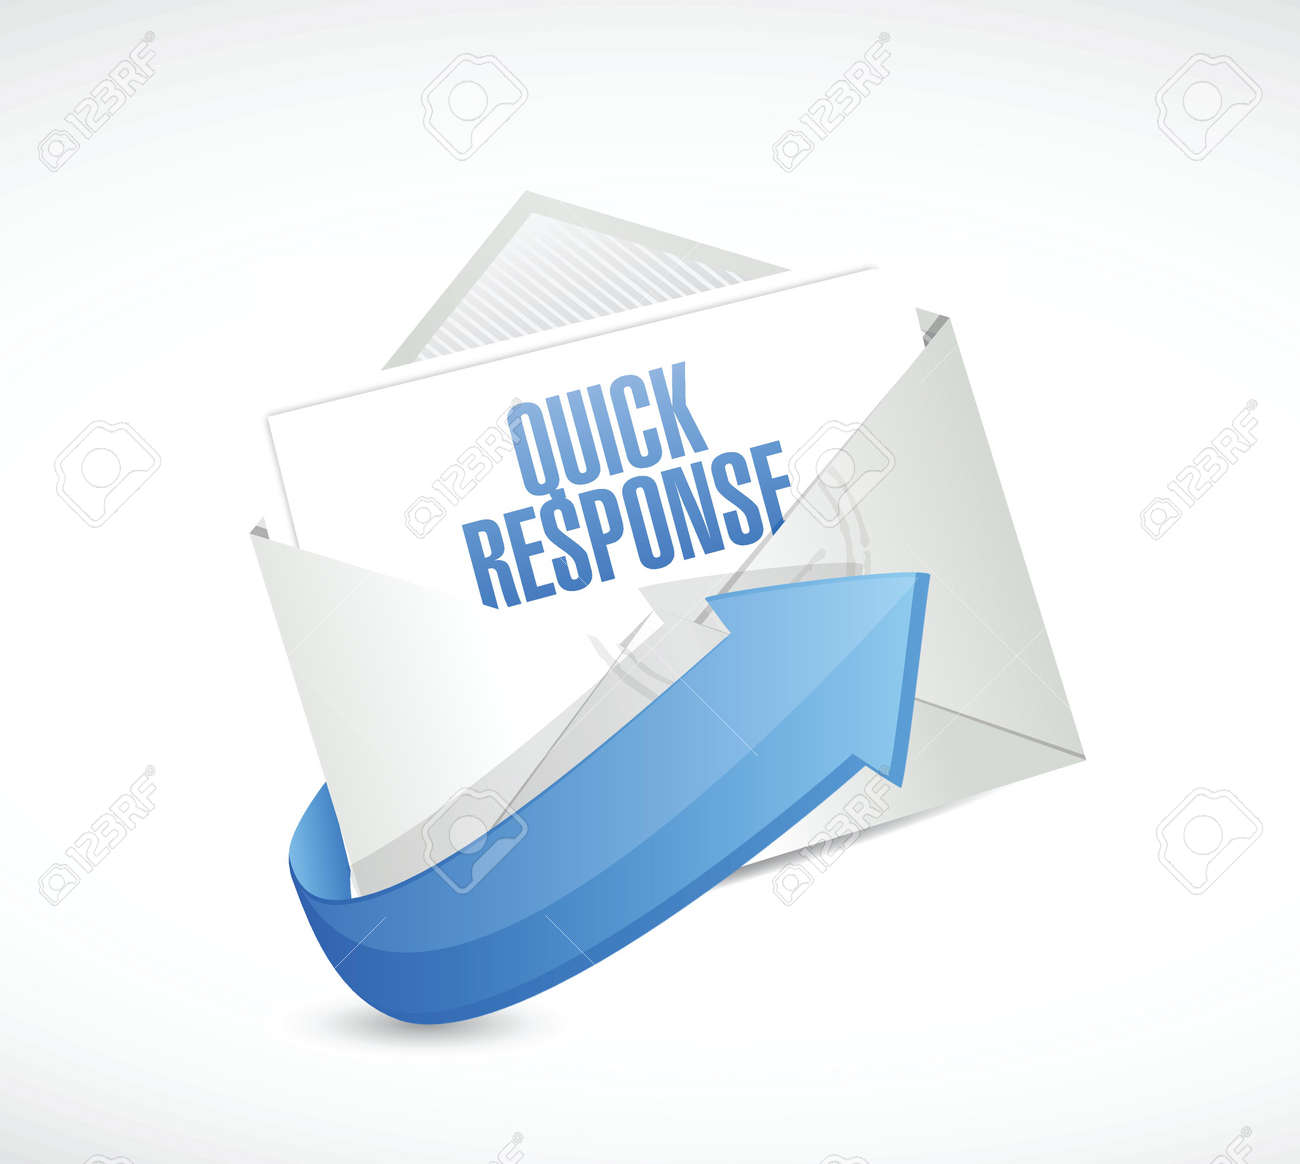 Responses Stock Photos Images. Royalty Free Responses Images And ...